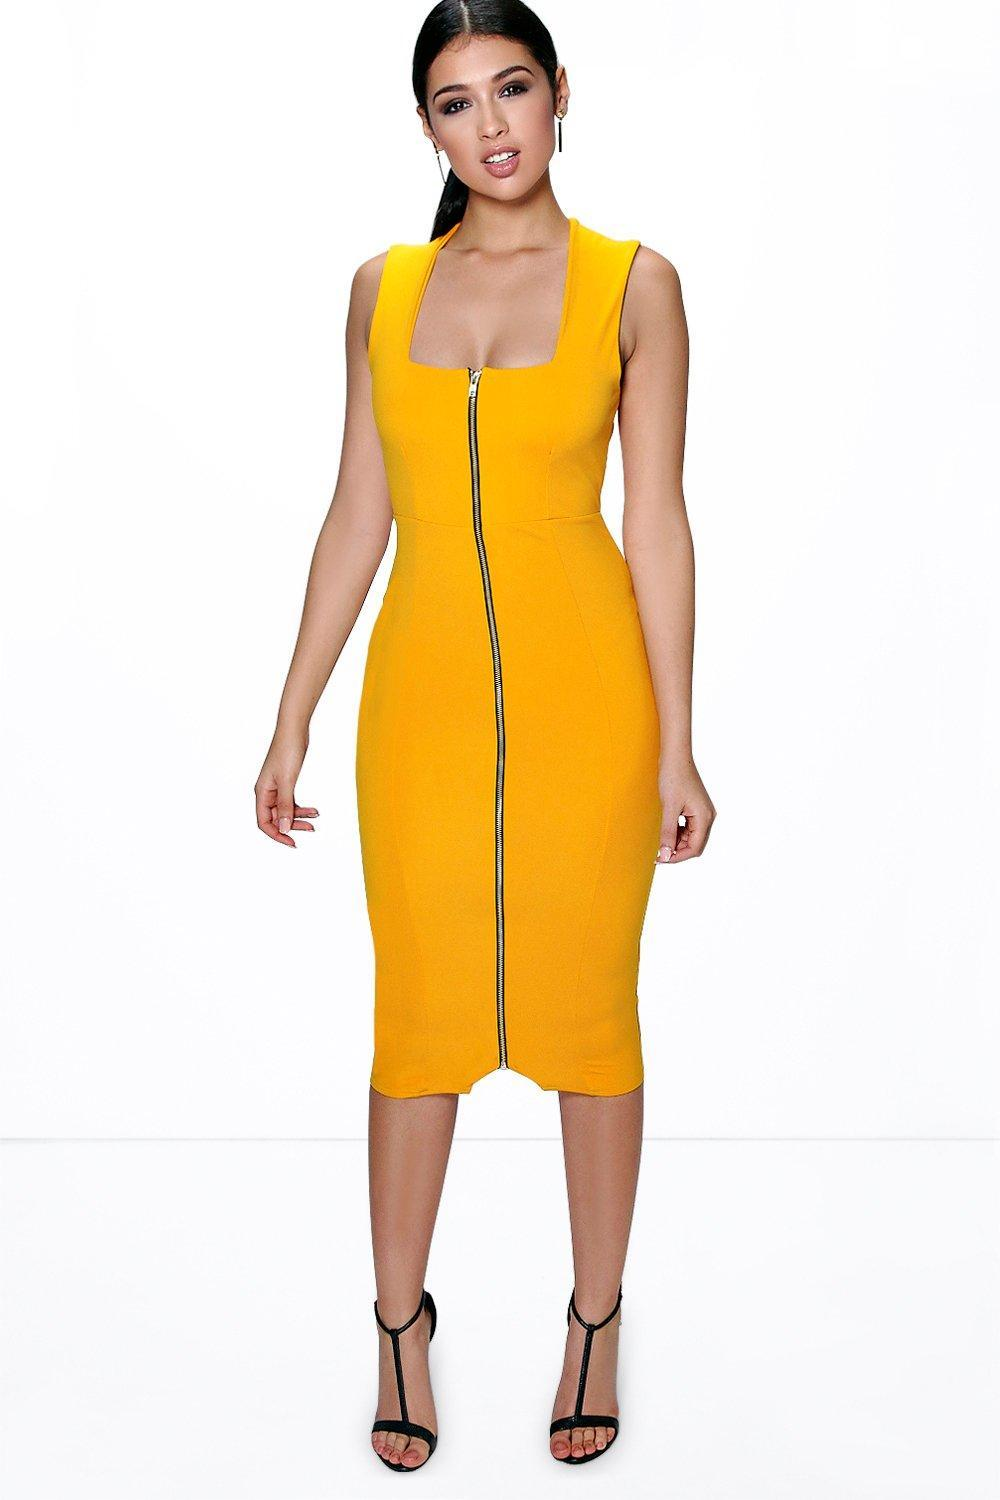 Square Neck Zip Front Midi Bodycon Dress Ochre - length: below the knee; fit: tight; pattern: plain; sleeve style: sleeveless; style: bodycon; hip detail: draws attention to hips; predominant colour: yellow; occasions: evening; fibres: polyester/polyamide - stretch; sleeve length: sleeveless; texture group: jersey - clingy; neckline: low square neck; pattern type: fabric; embellishment: zips; season: a/w 2015; wardrobe: event; embellishment location: bust, skirt